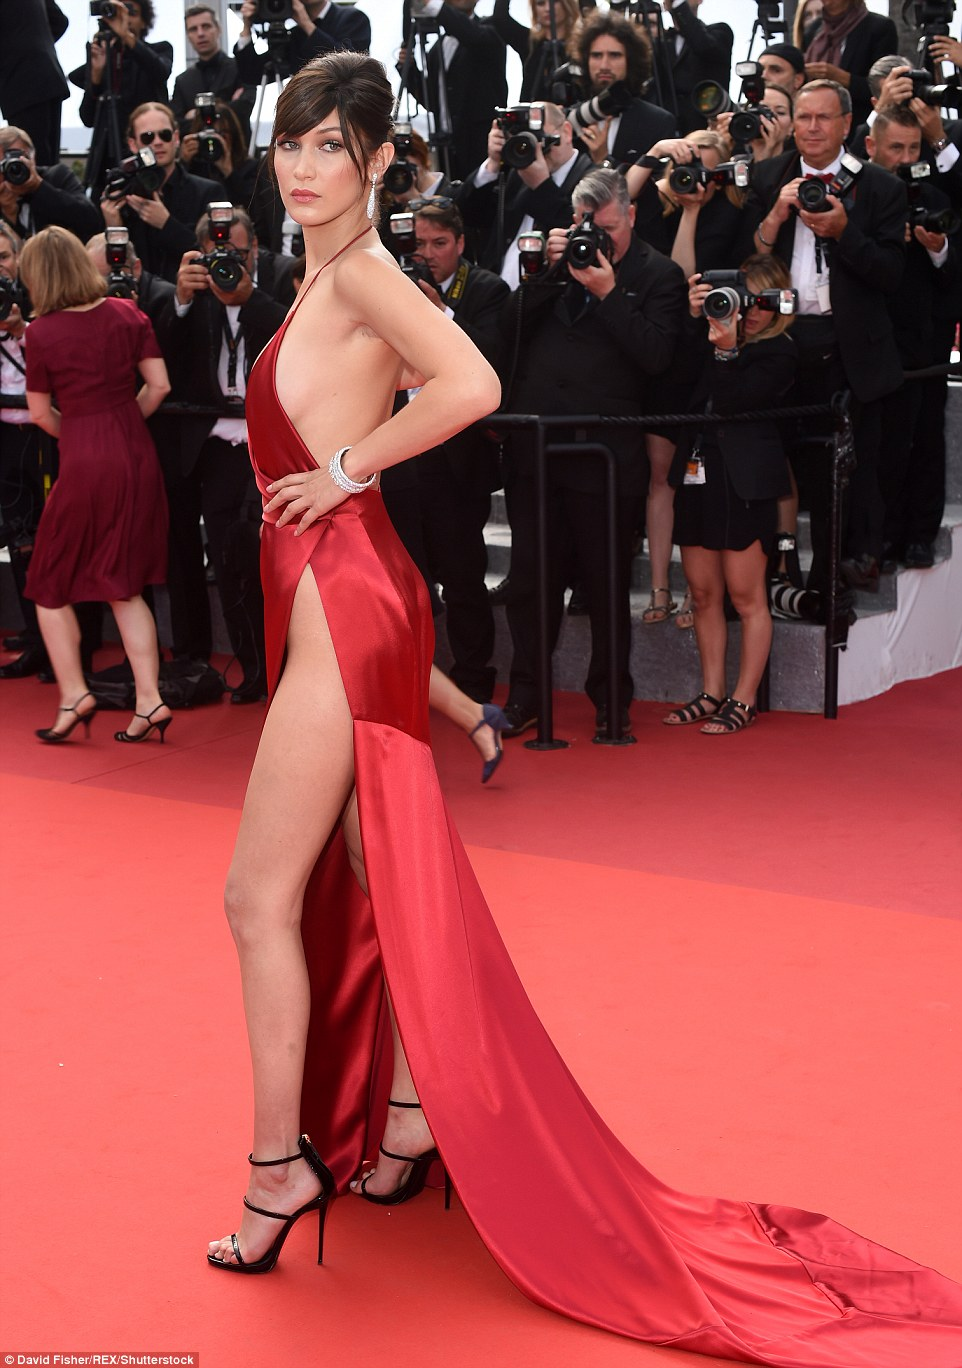 Bella Hadid  wearing lexandre  Vauthier Couture  at Cannes 2016